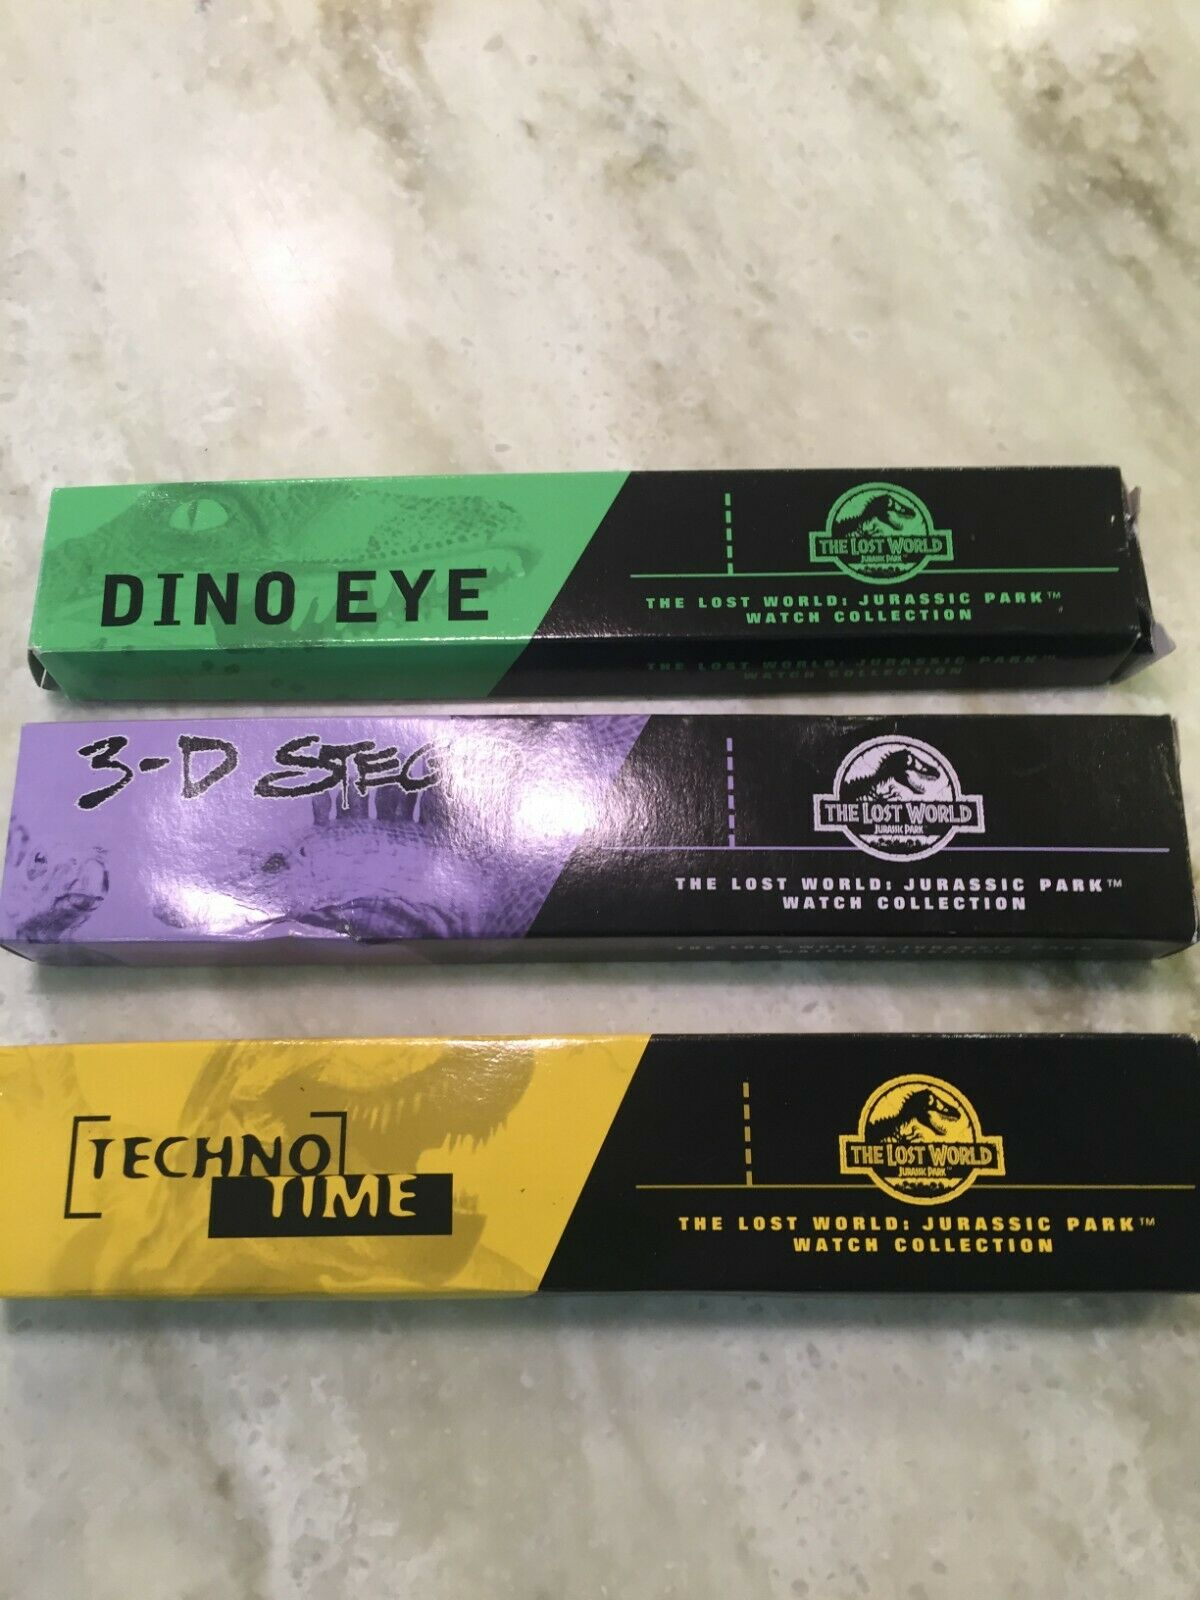 Lost World Jurassic Park 1997 Burger King Lot Of 3 Watches In Boxes - $15.00